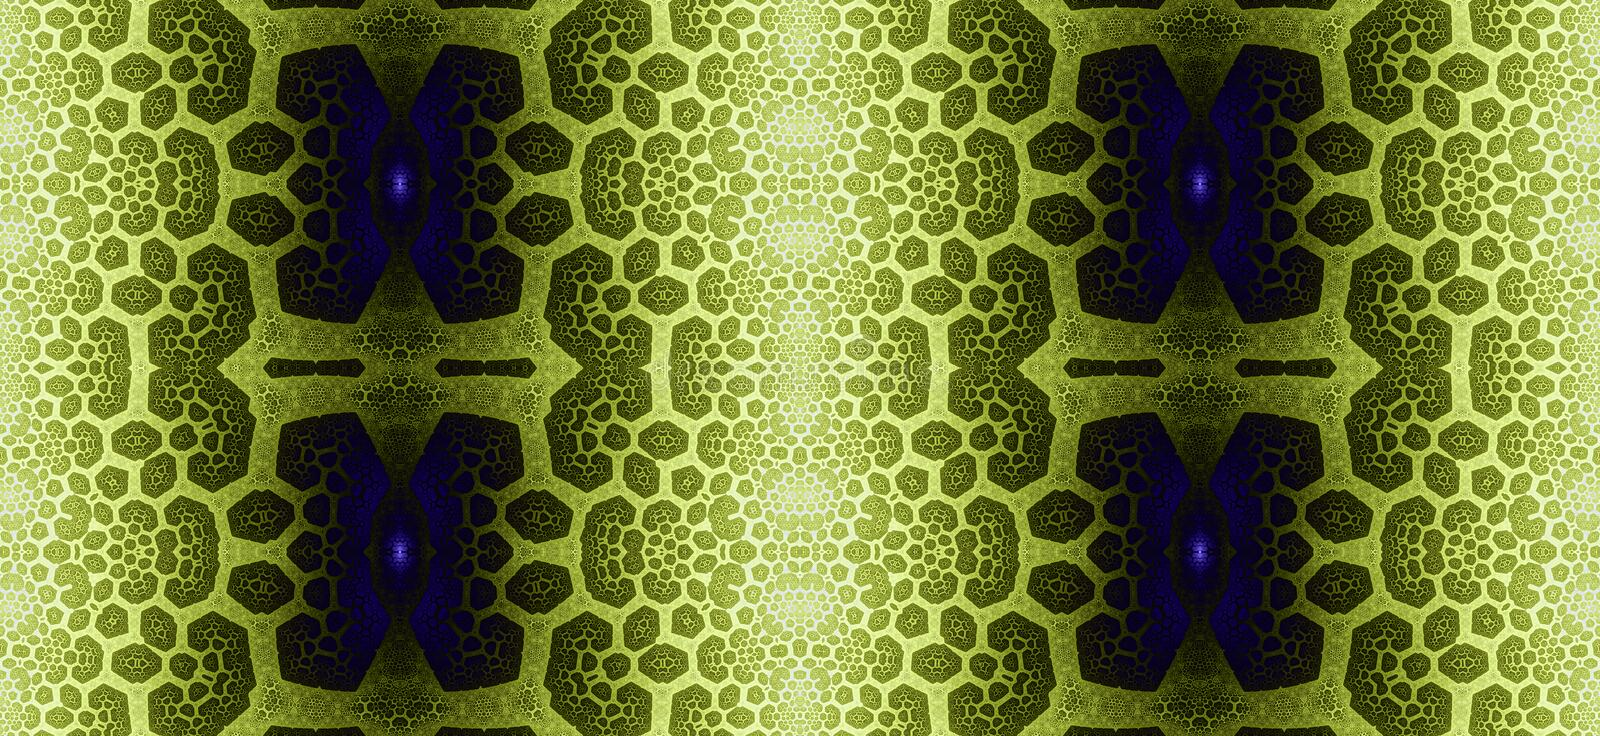 Abstract fractal high resolution seamless pattern for carpets, tapestries, fabric and wallpapers or any creative other use royalty free illustration